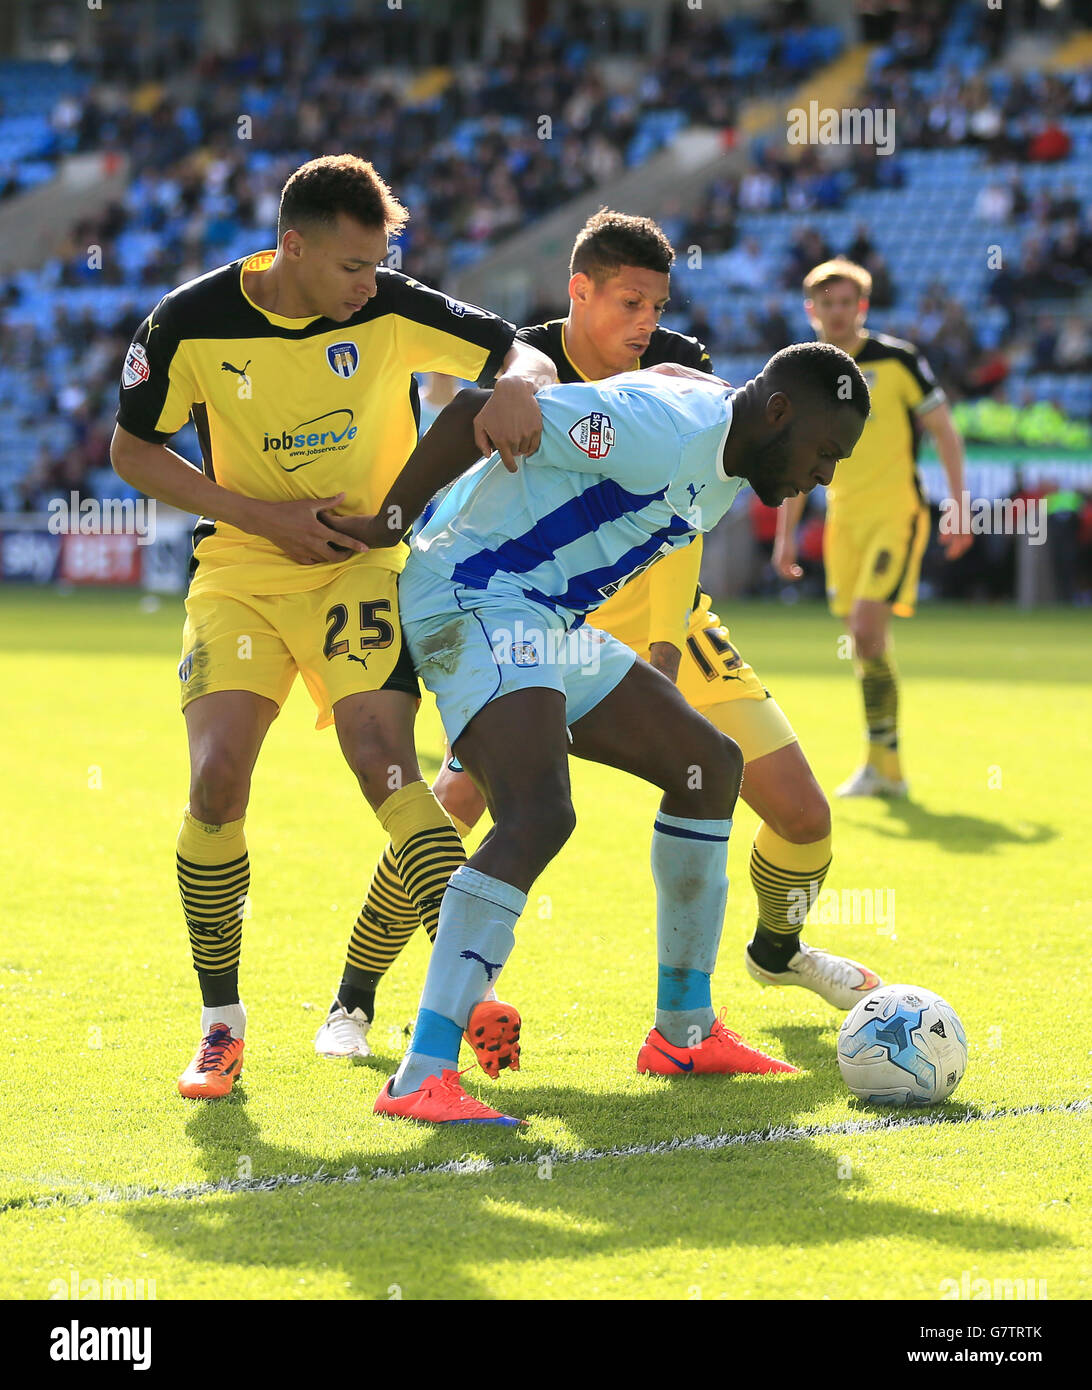 Colchester vs coventry betting preview online sports betting information bettors